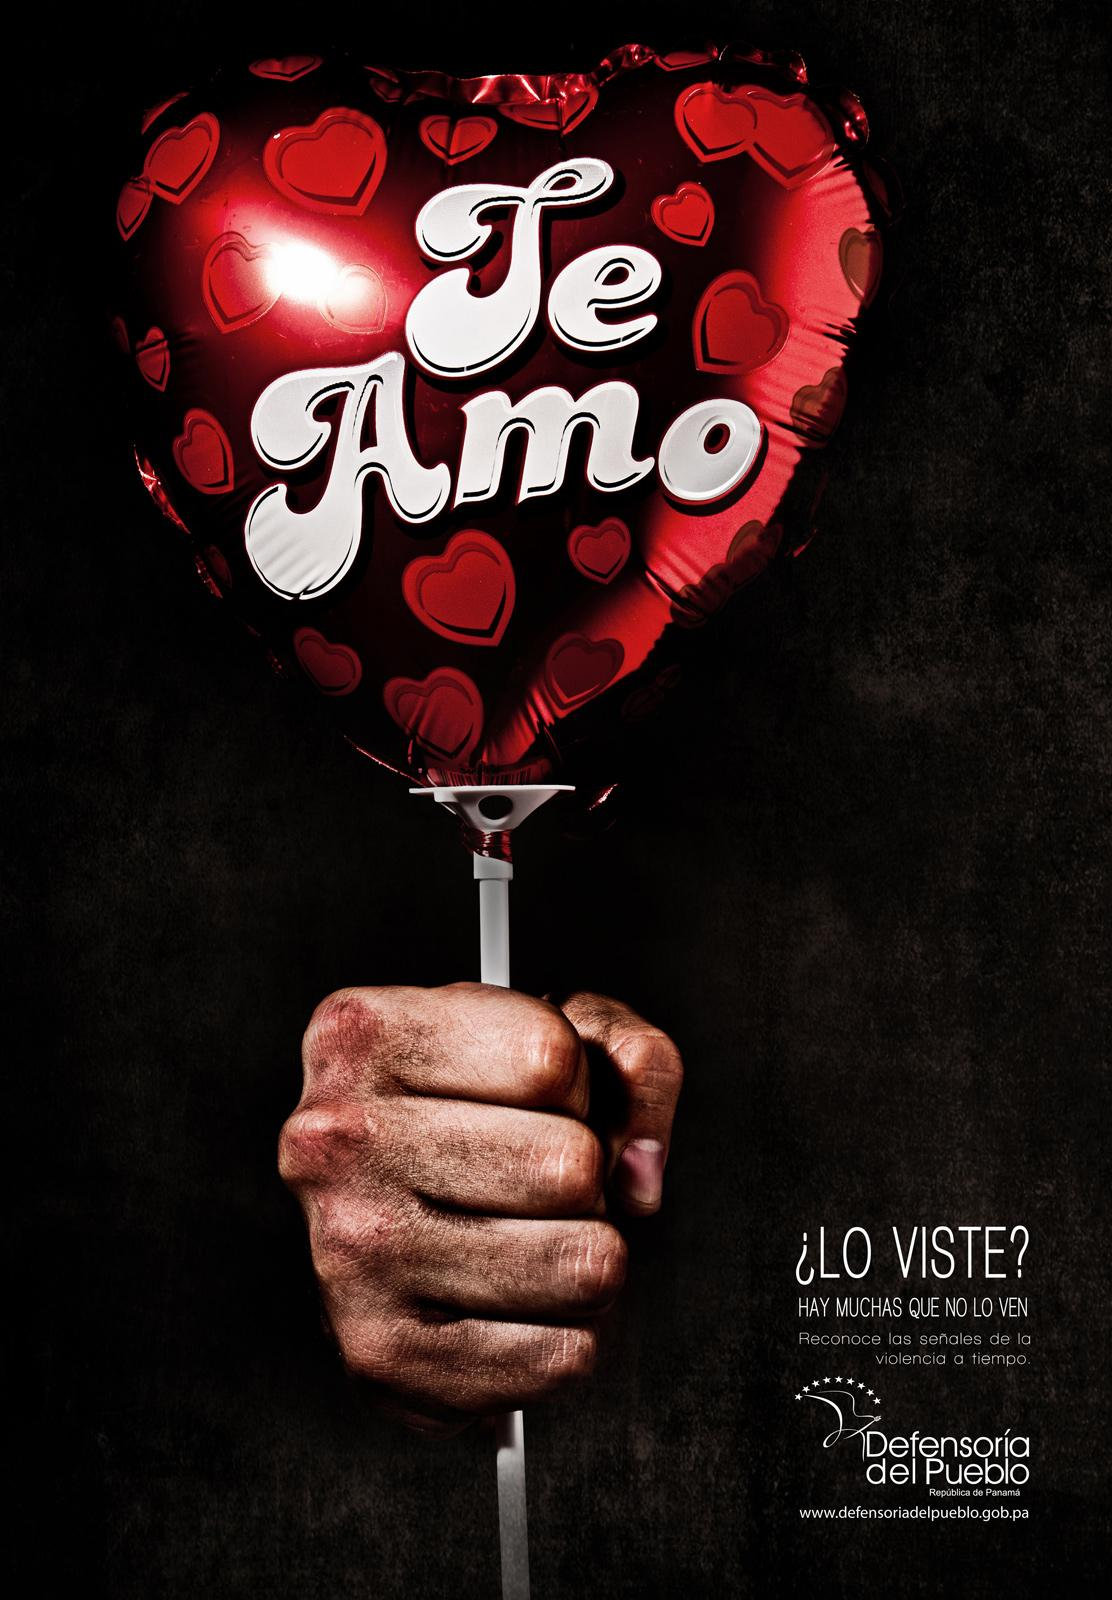 Defensoria del pueblo Print Ad -  Balloon